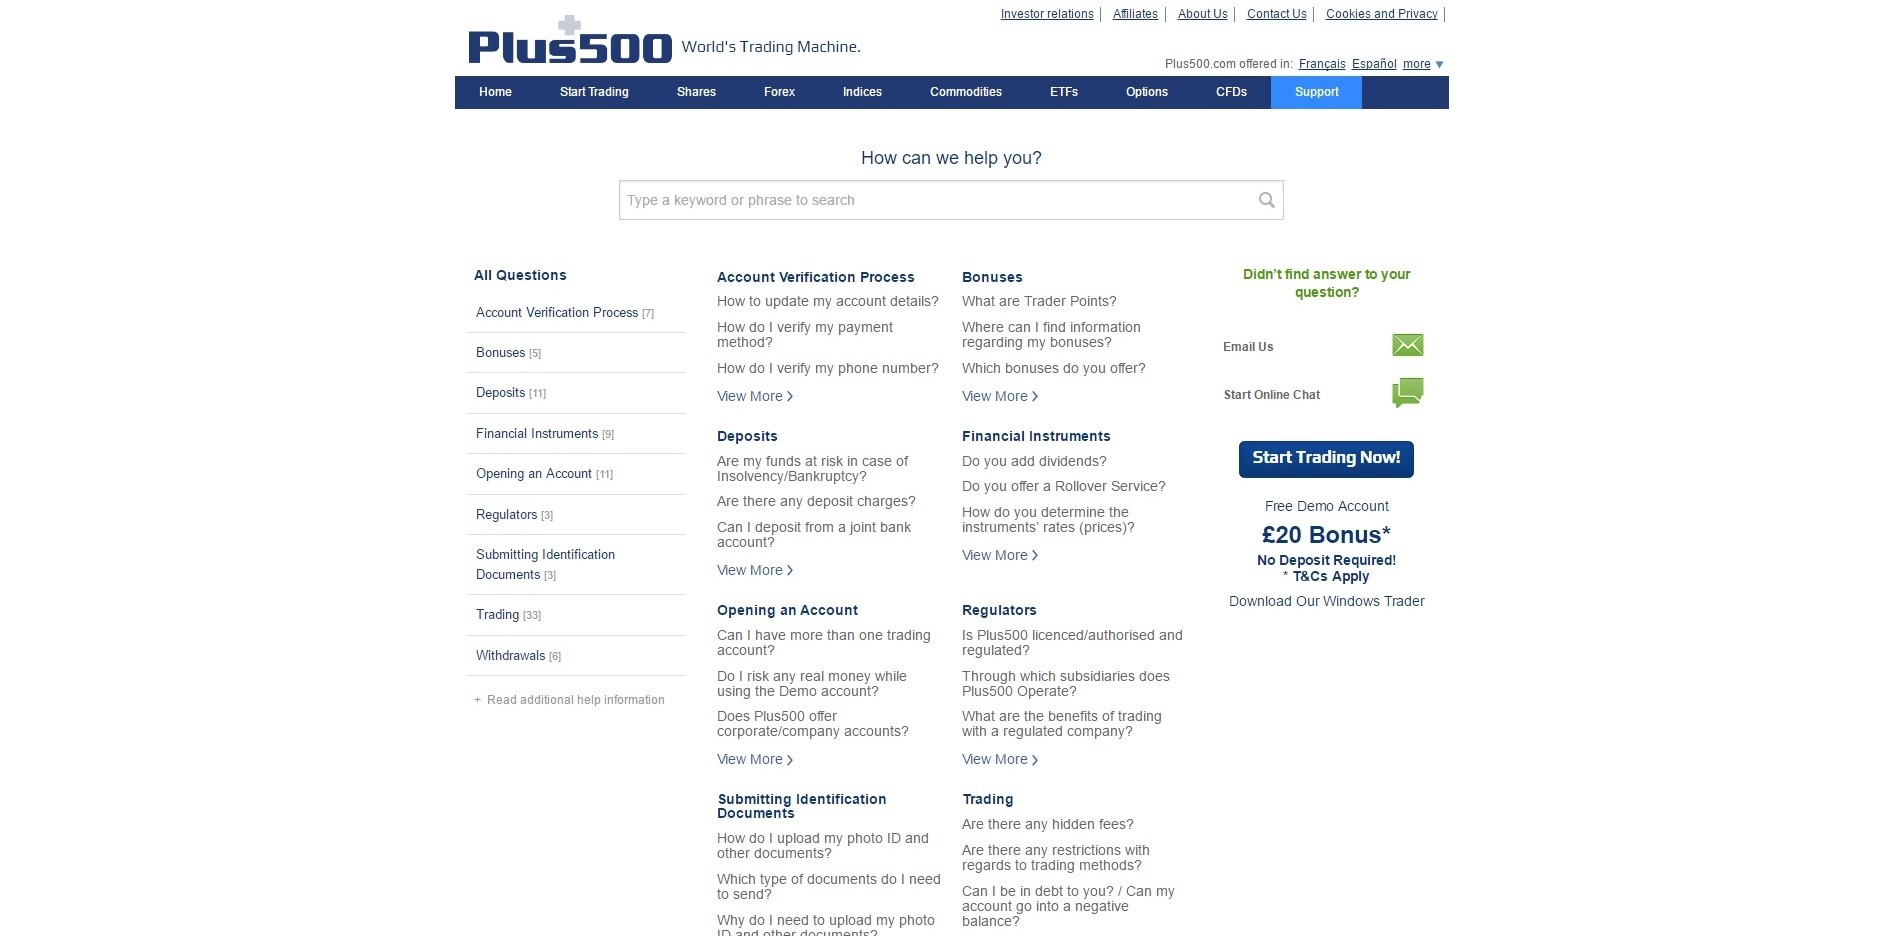 Trade at Plus500 Forex Trading